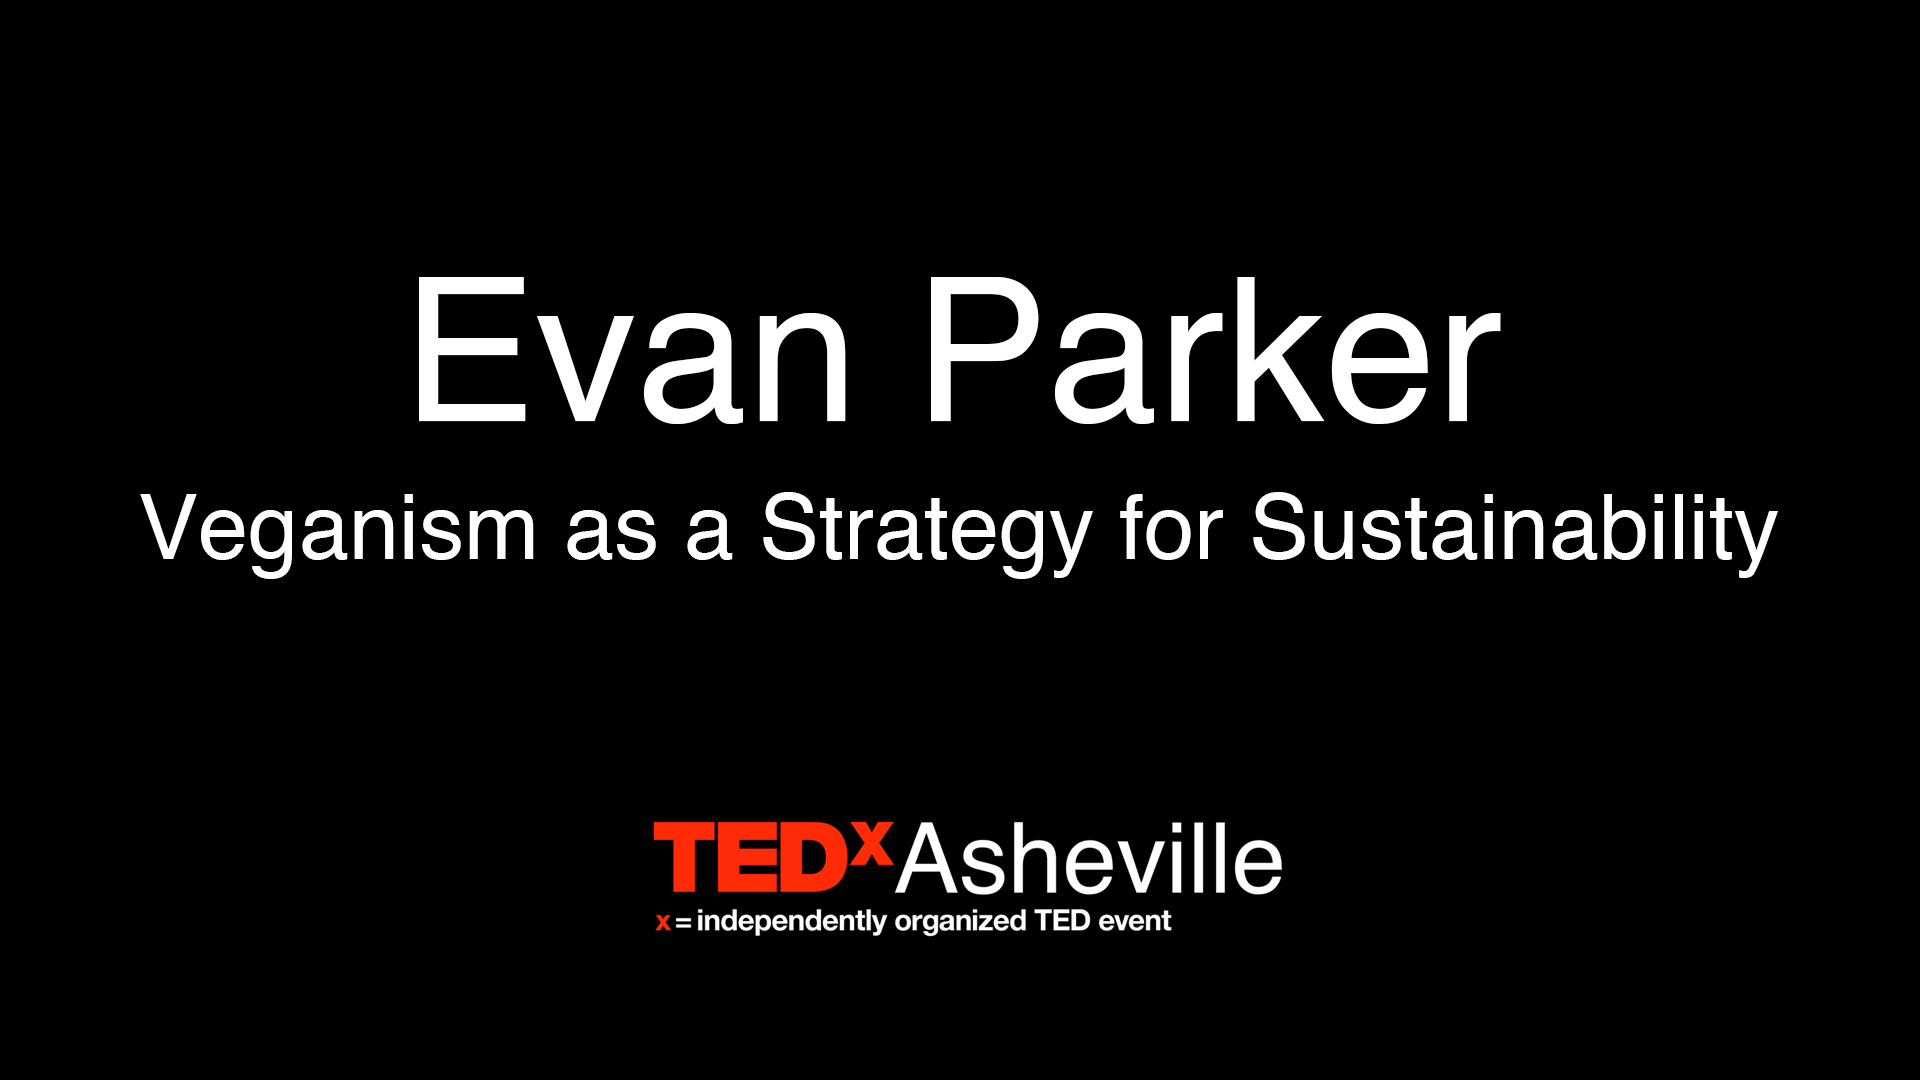 Evan Parker - Veganism as a Strategy for Sustainability